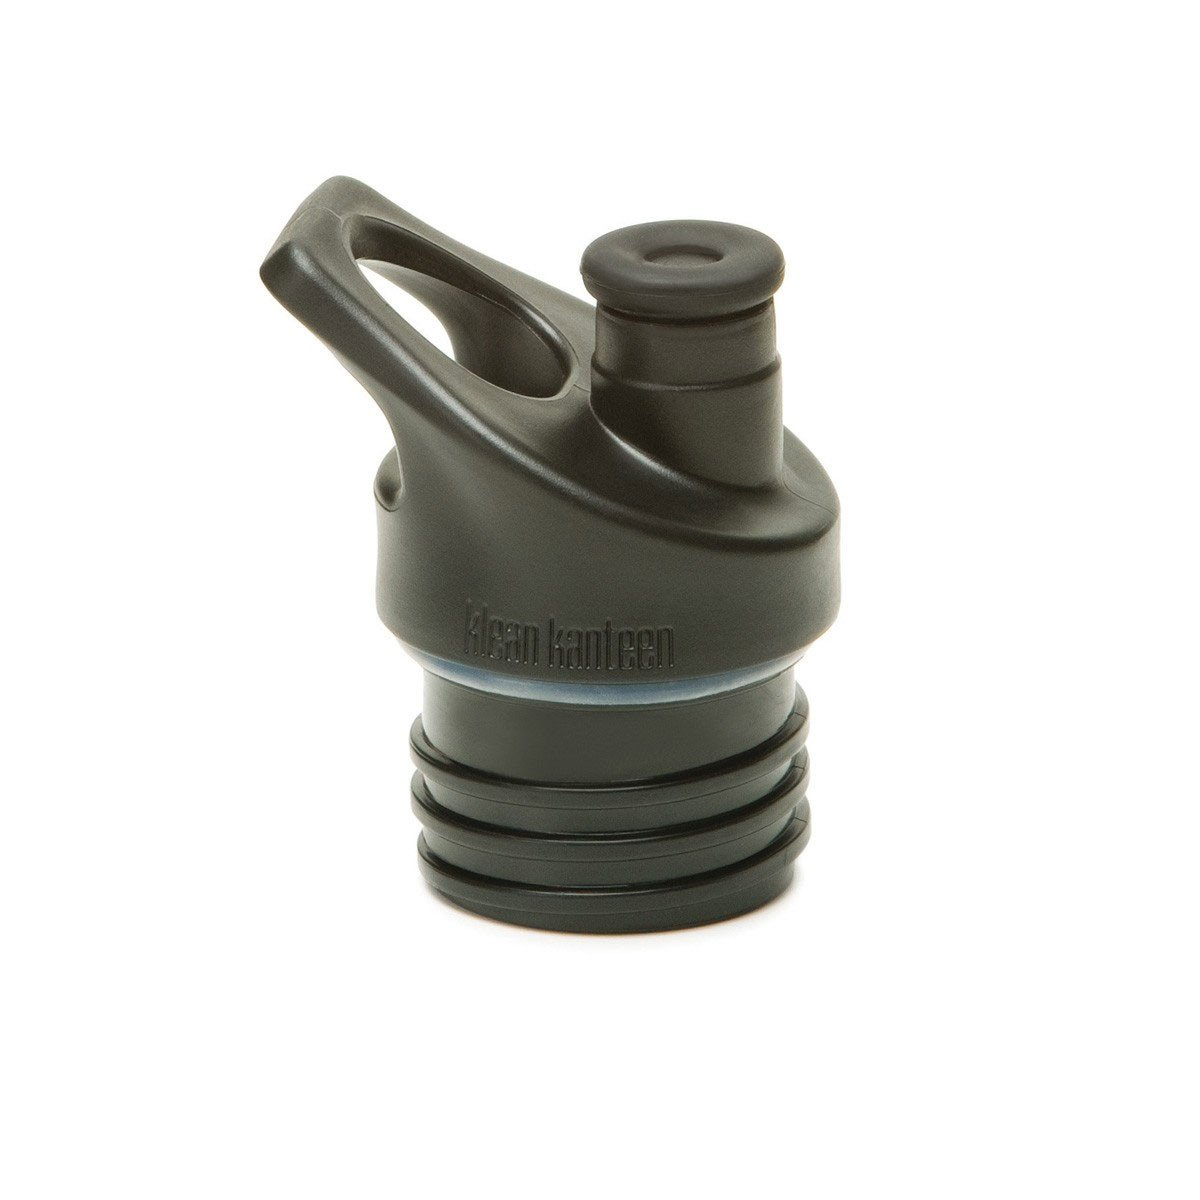 Klean Kanteen Replacement Bottle Caps  Sports Cap 3.0 - Klean Kanteen - Little Earth Nest - 2